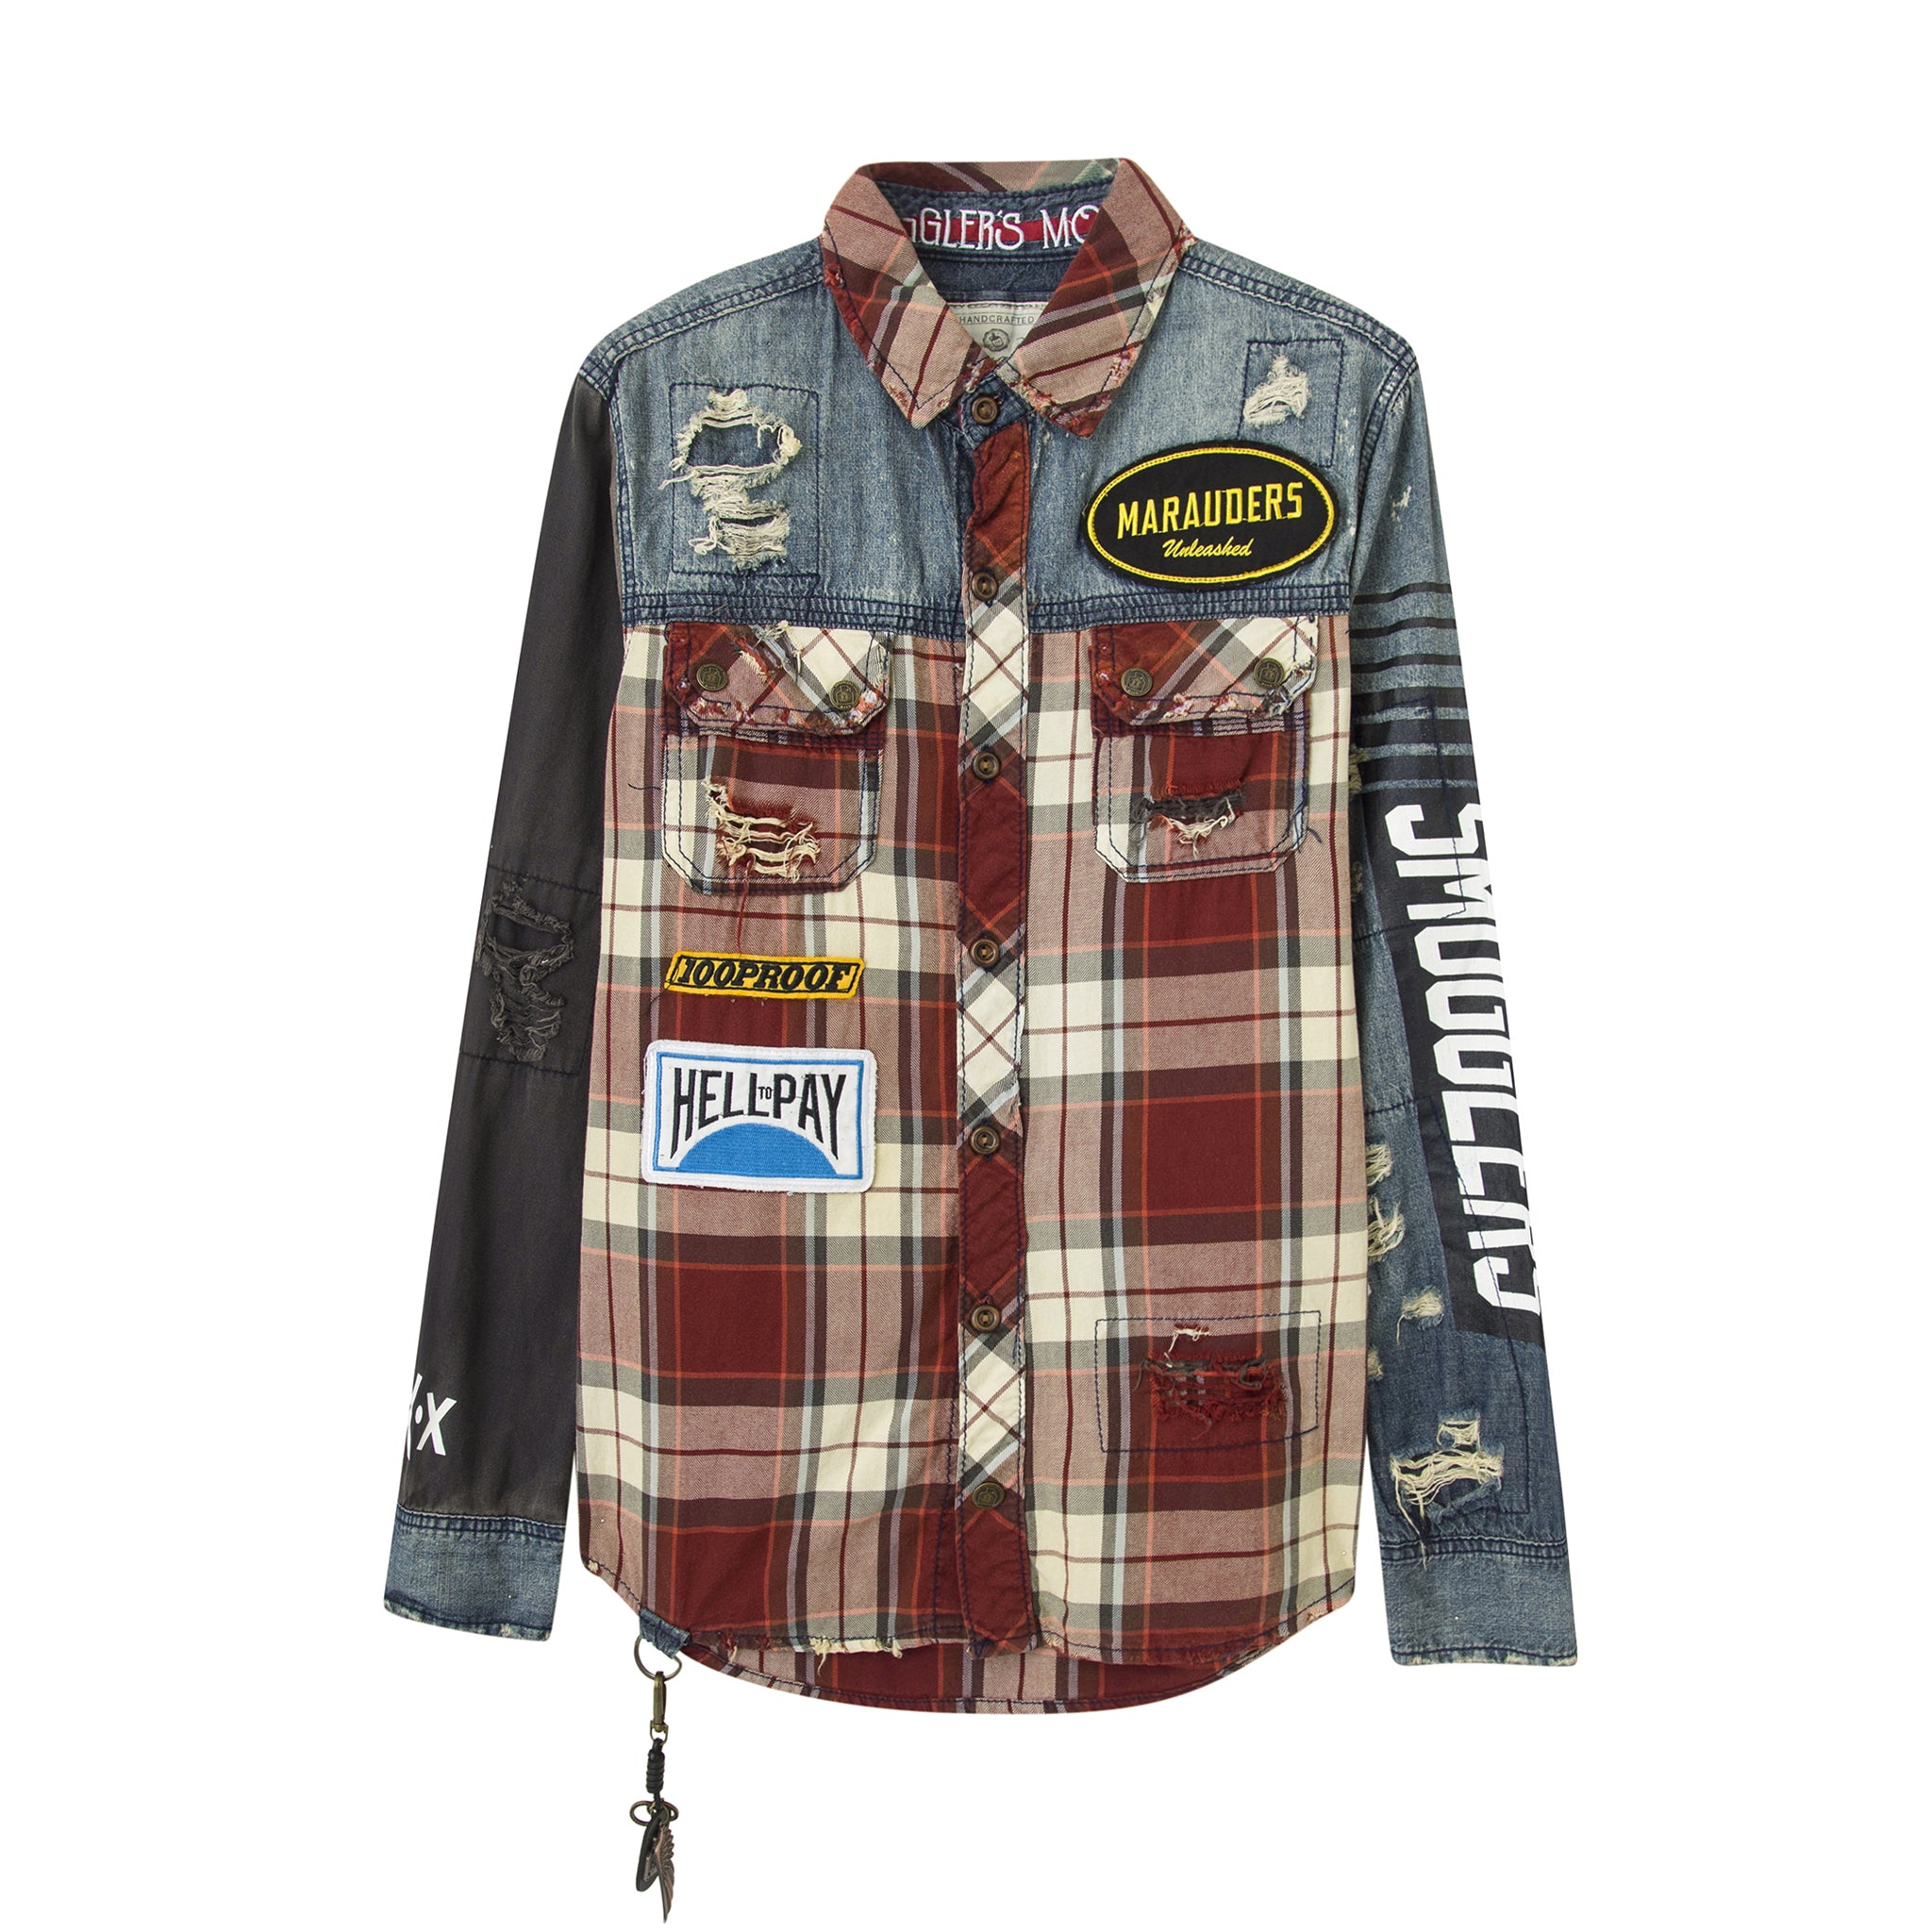 Marauders Distressed Denim and Plaid Mechanics shirt